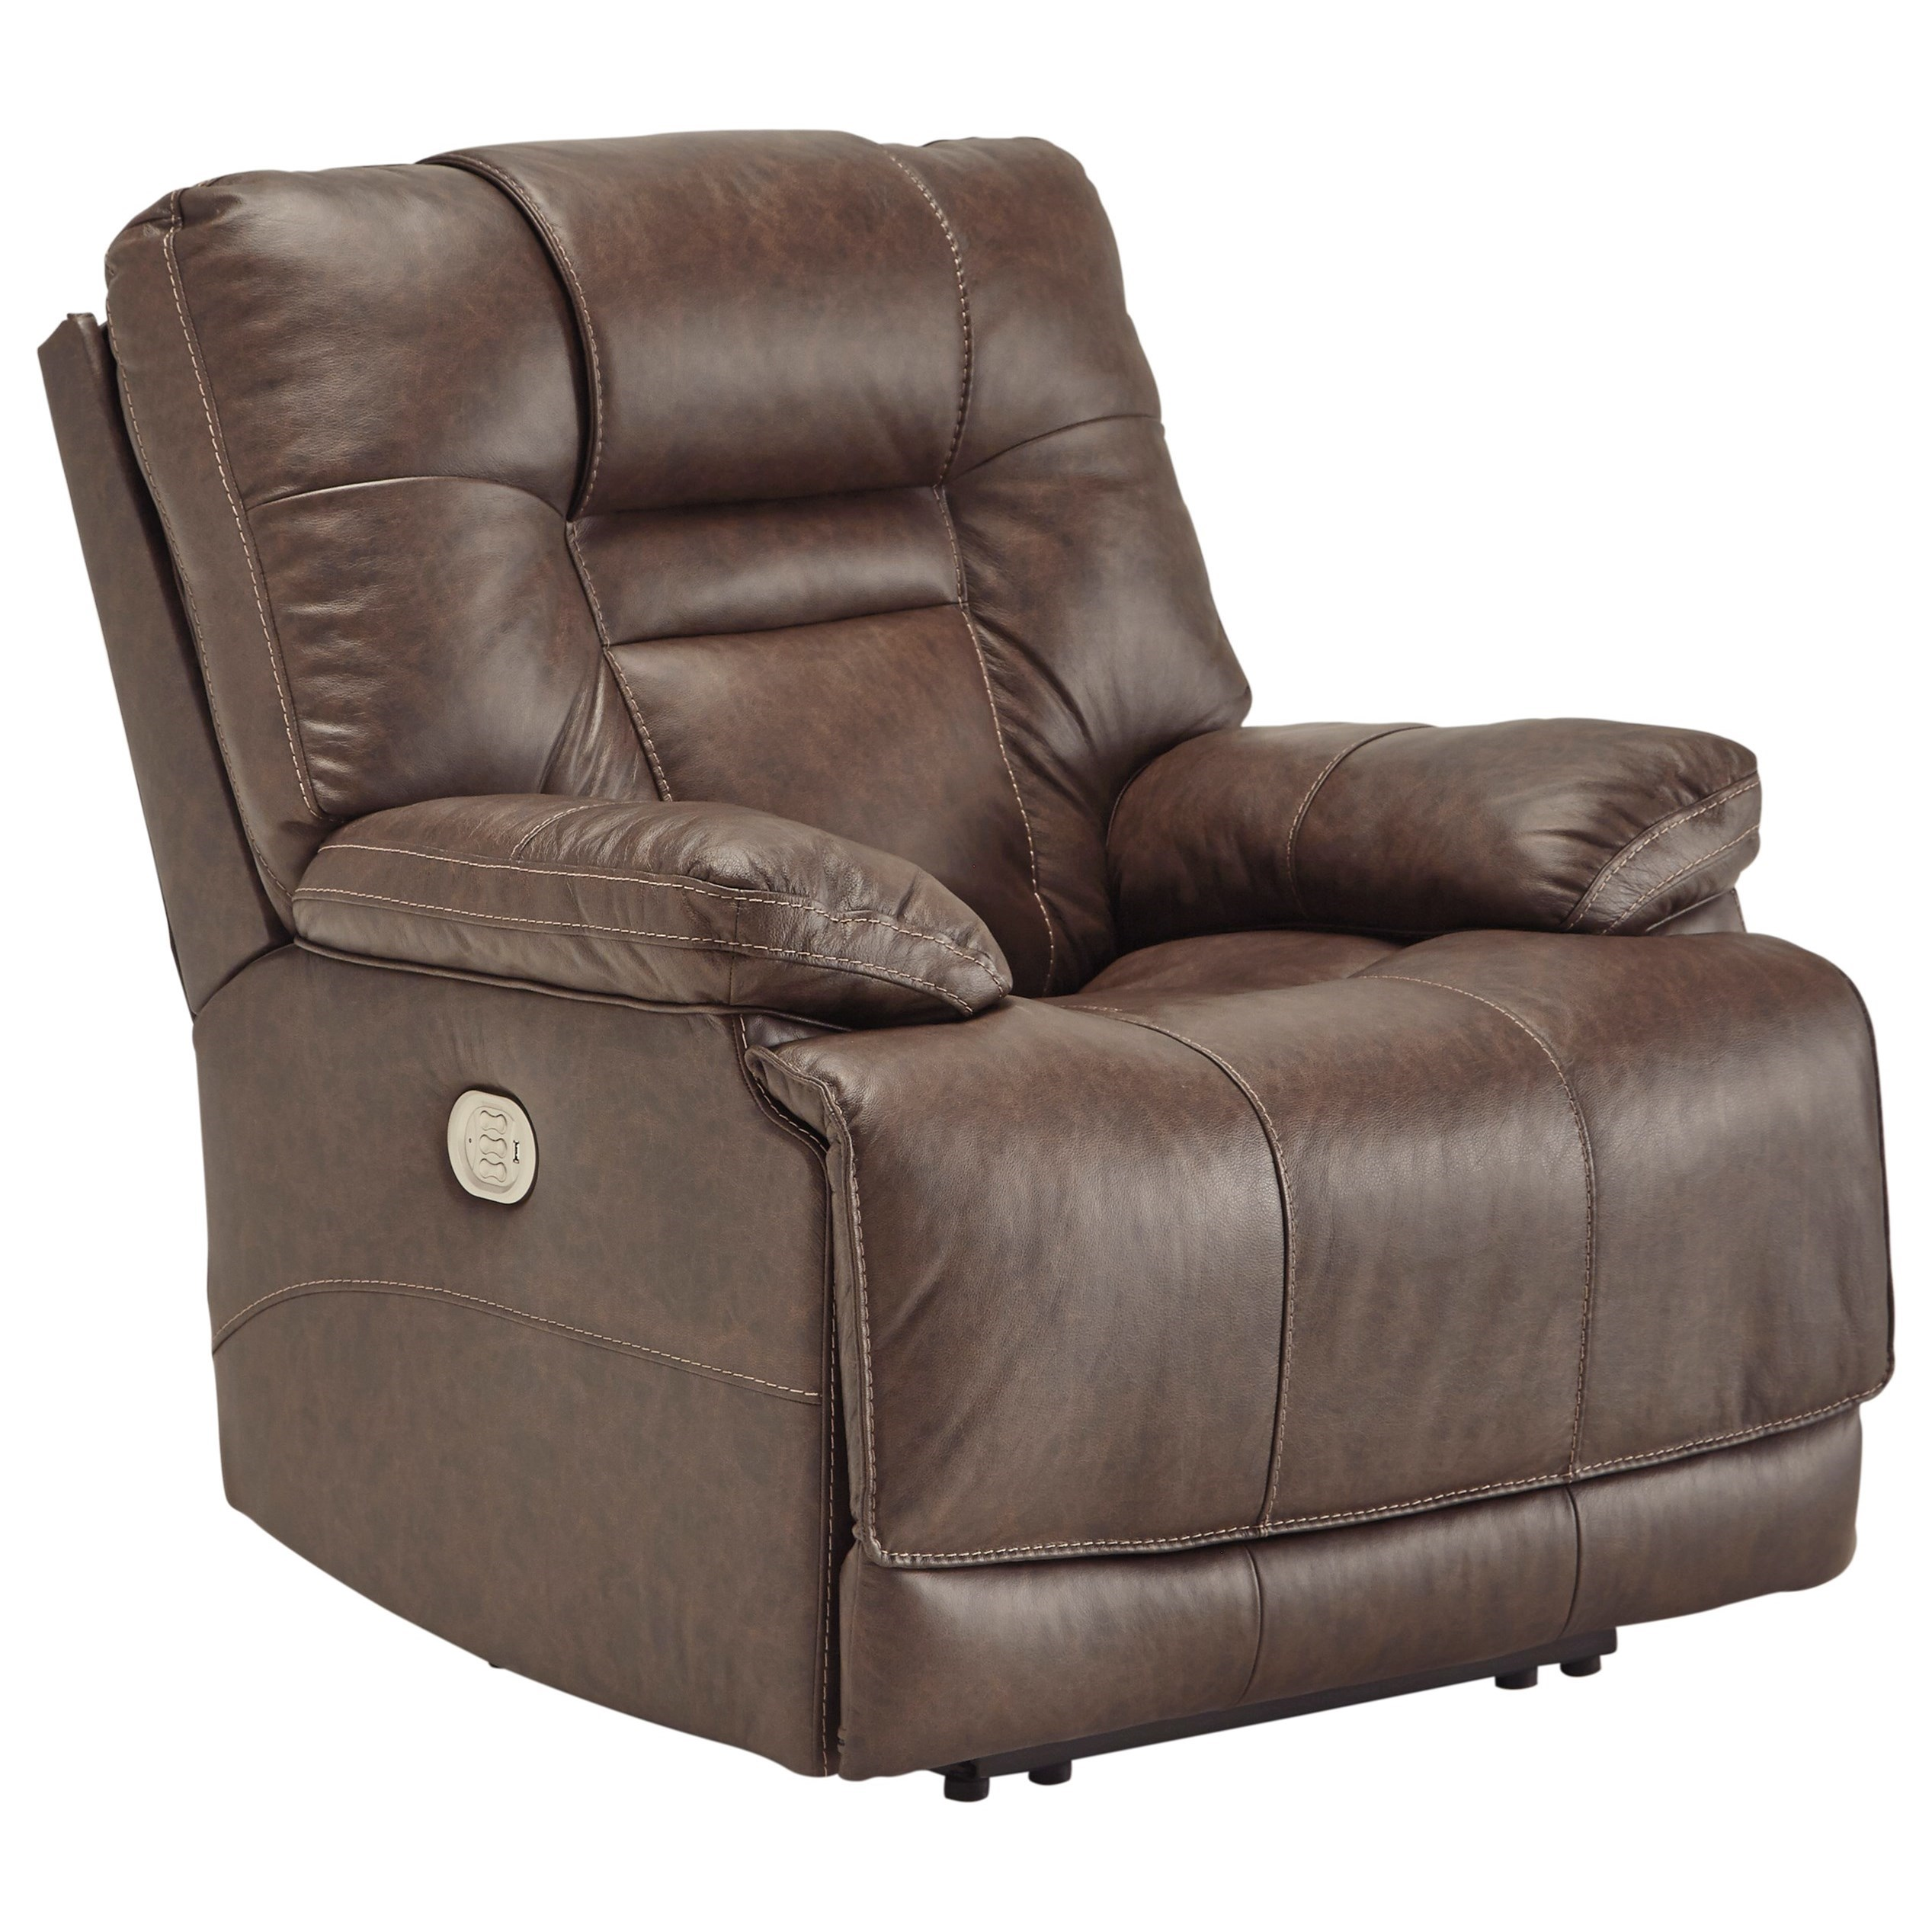 Wurstrow Power Recliner by Signature Design by Ashley at Furniture Fair - North Carolina